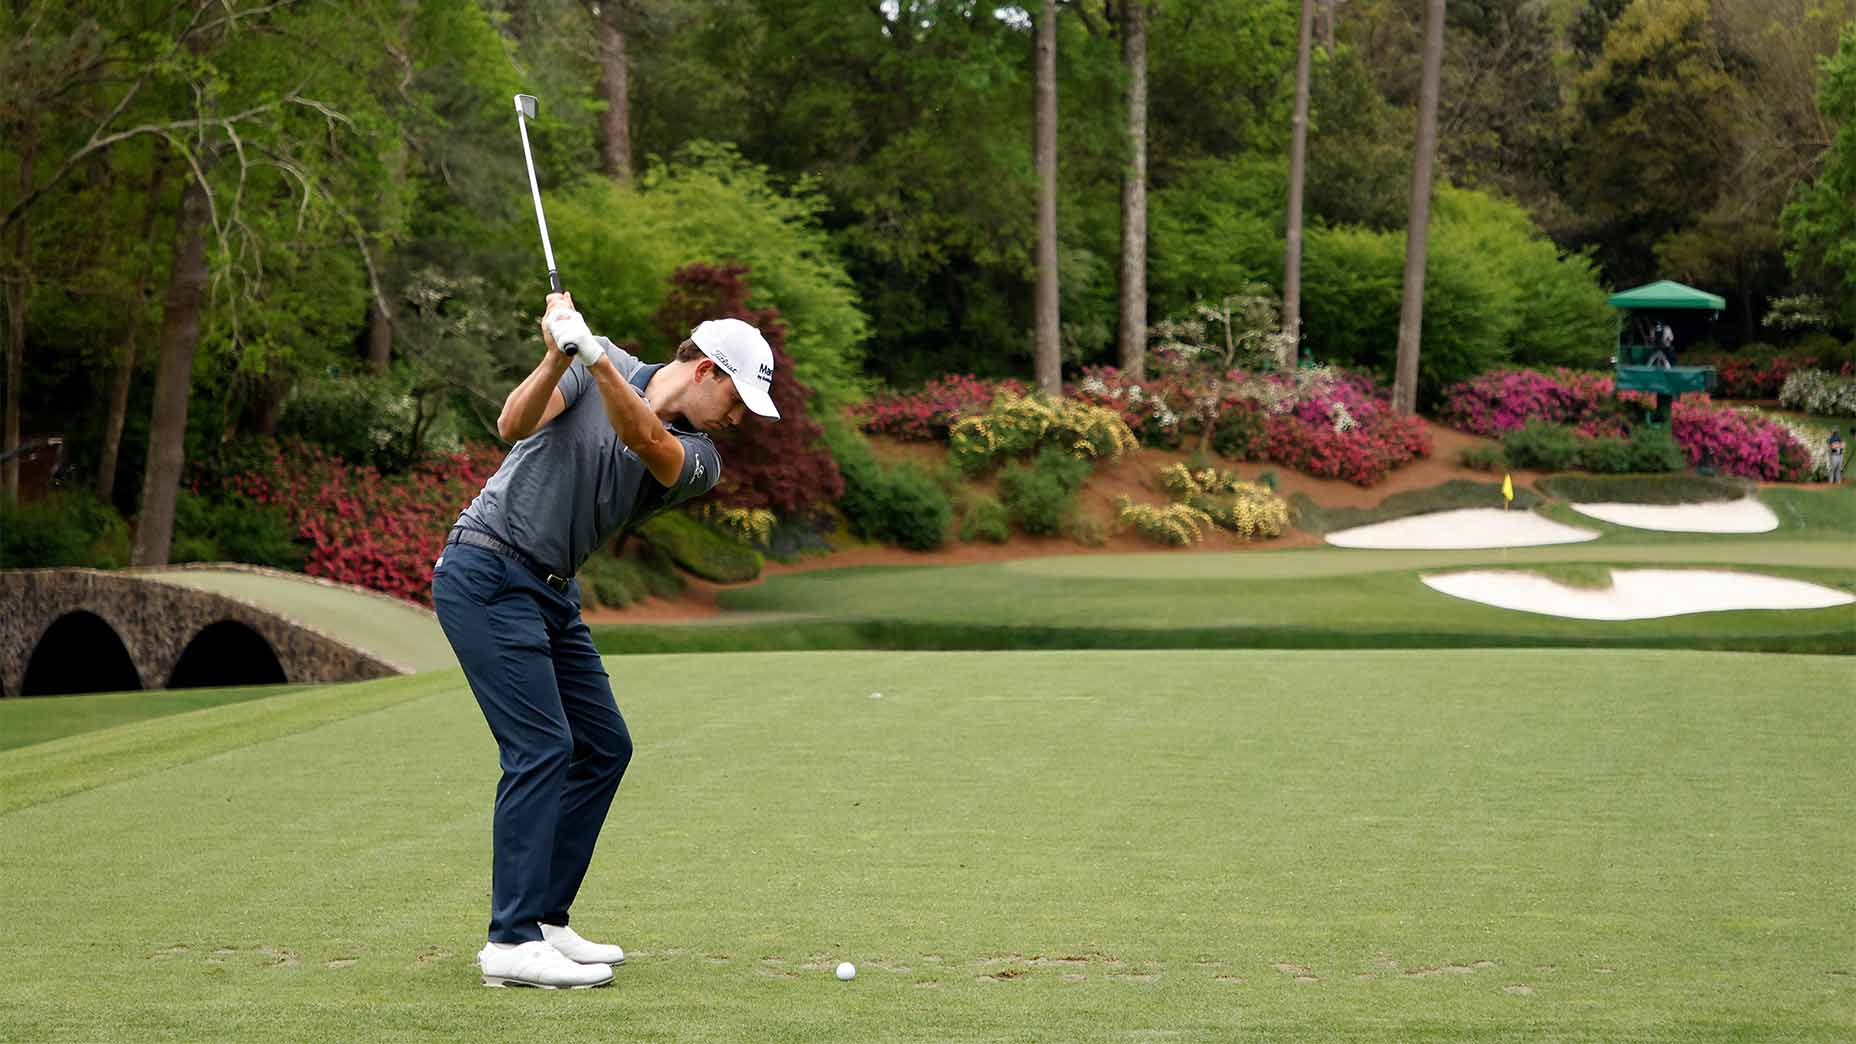 Patrick Cantlay hits his tee shot to the par-3 12th green at Augusta National on Thursday.